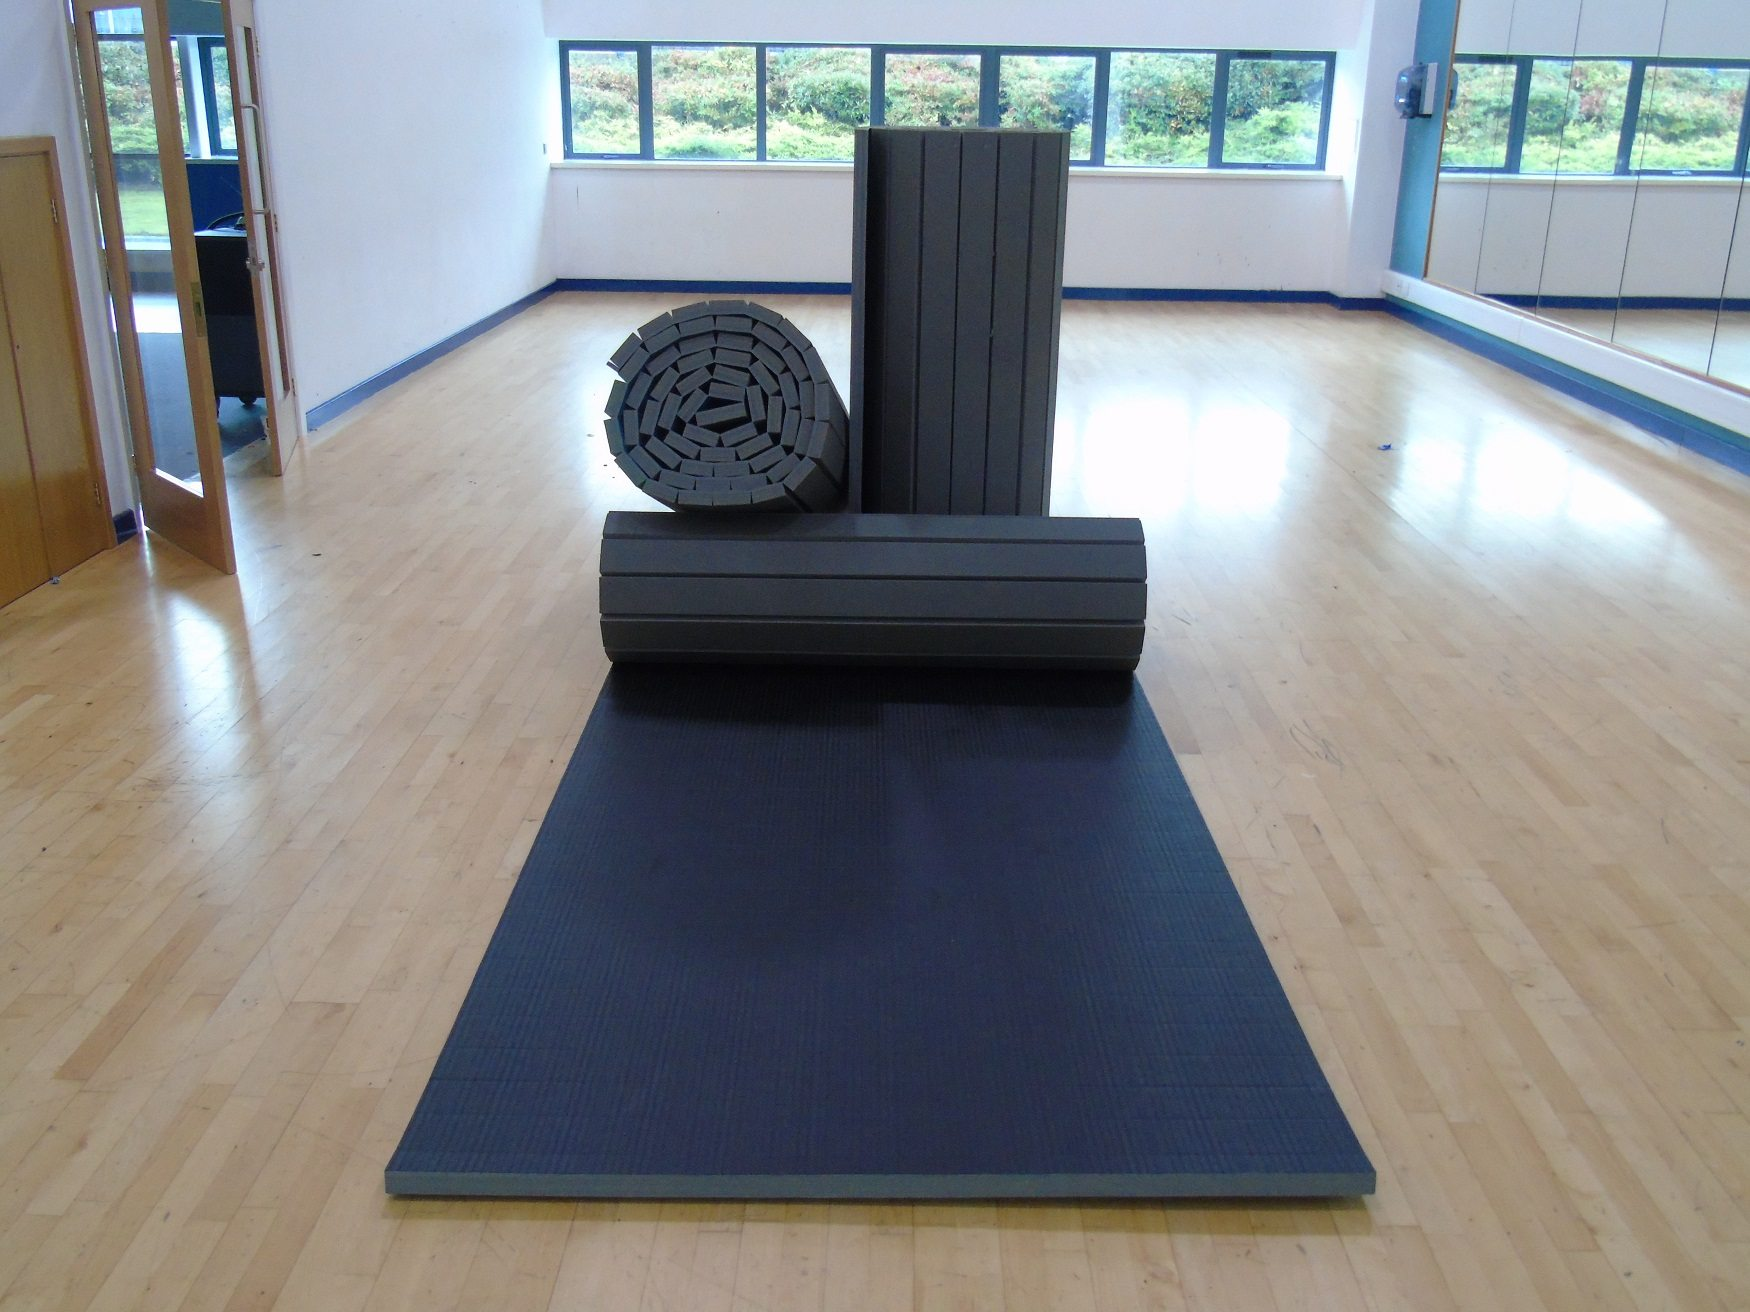 Roll Out Mats Martial Arts Matting Foams4sports Gym